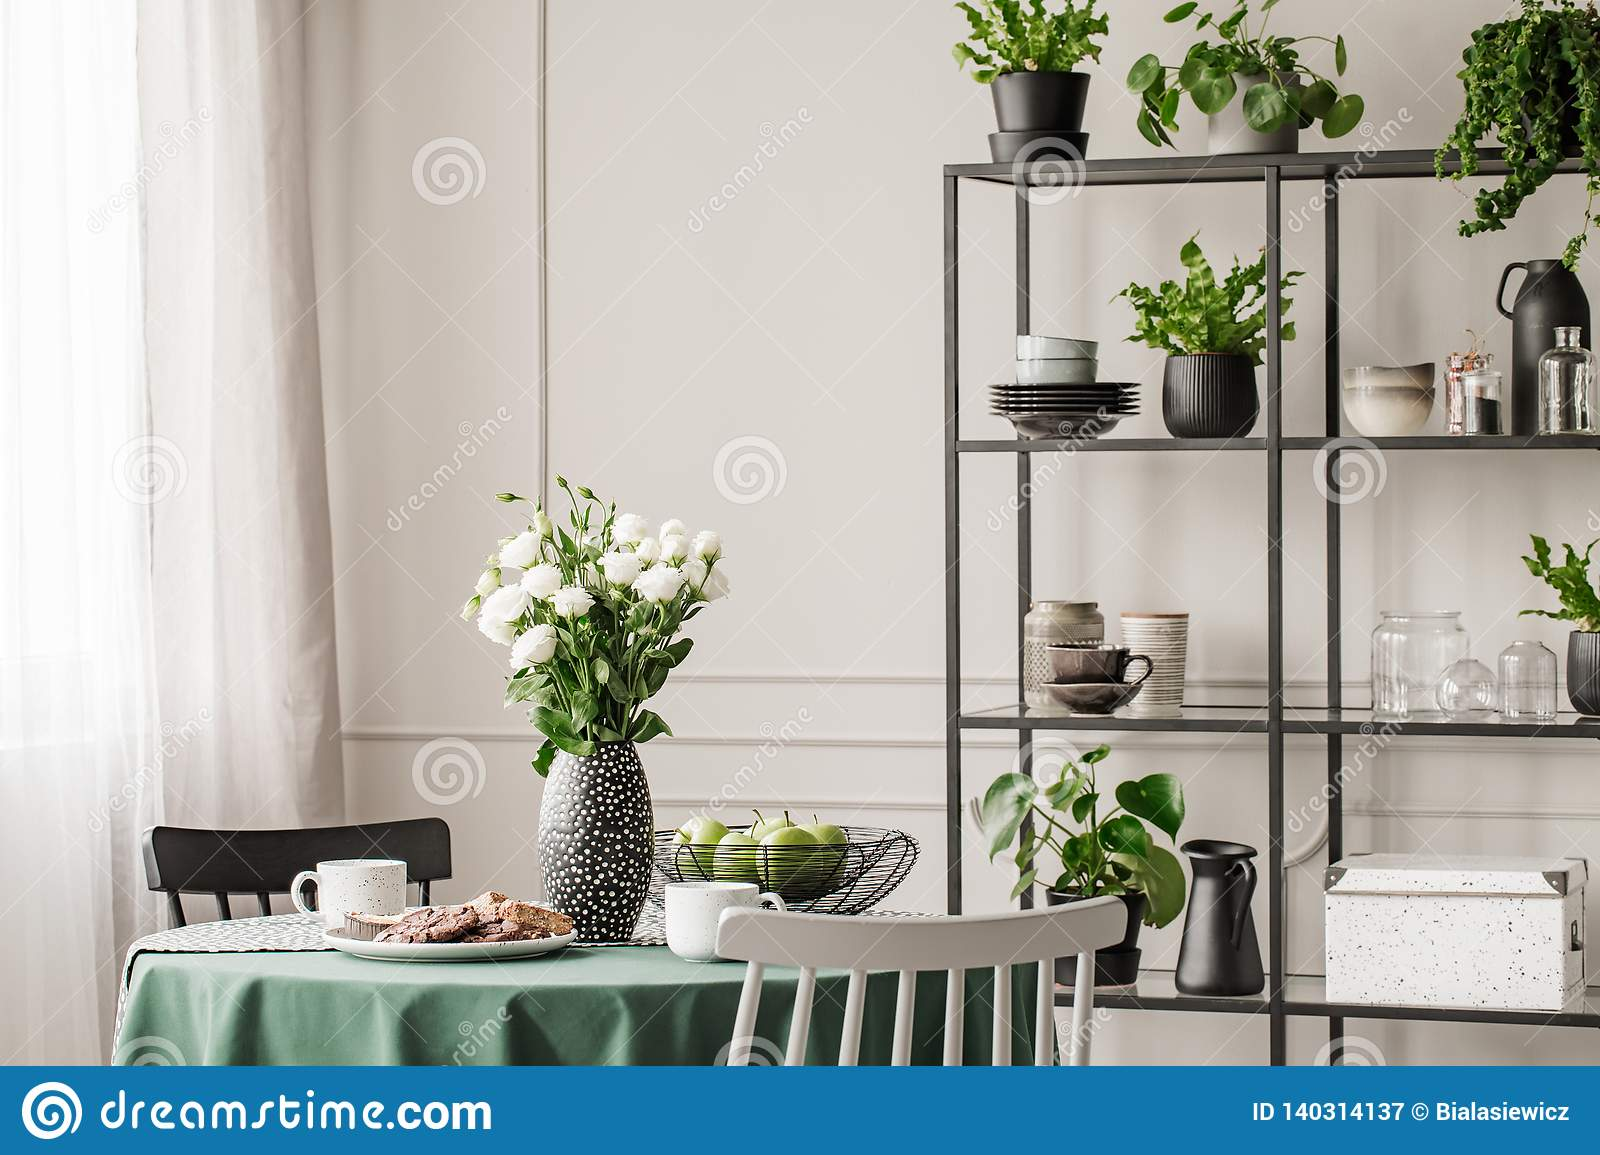 Industrial Metal Shelf With Dishes And Plants In Bright ...